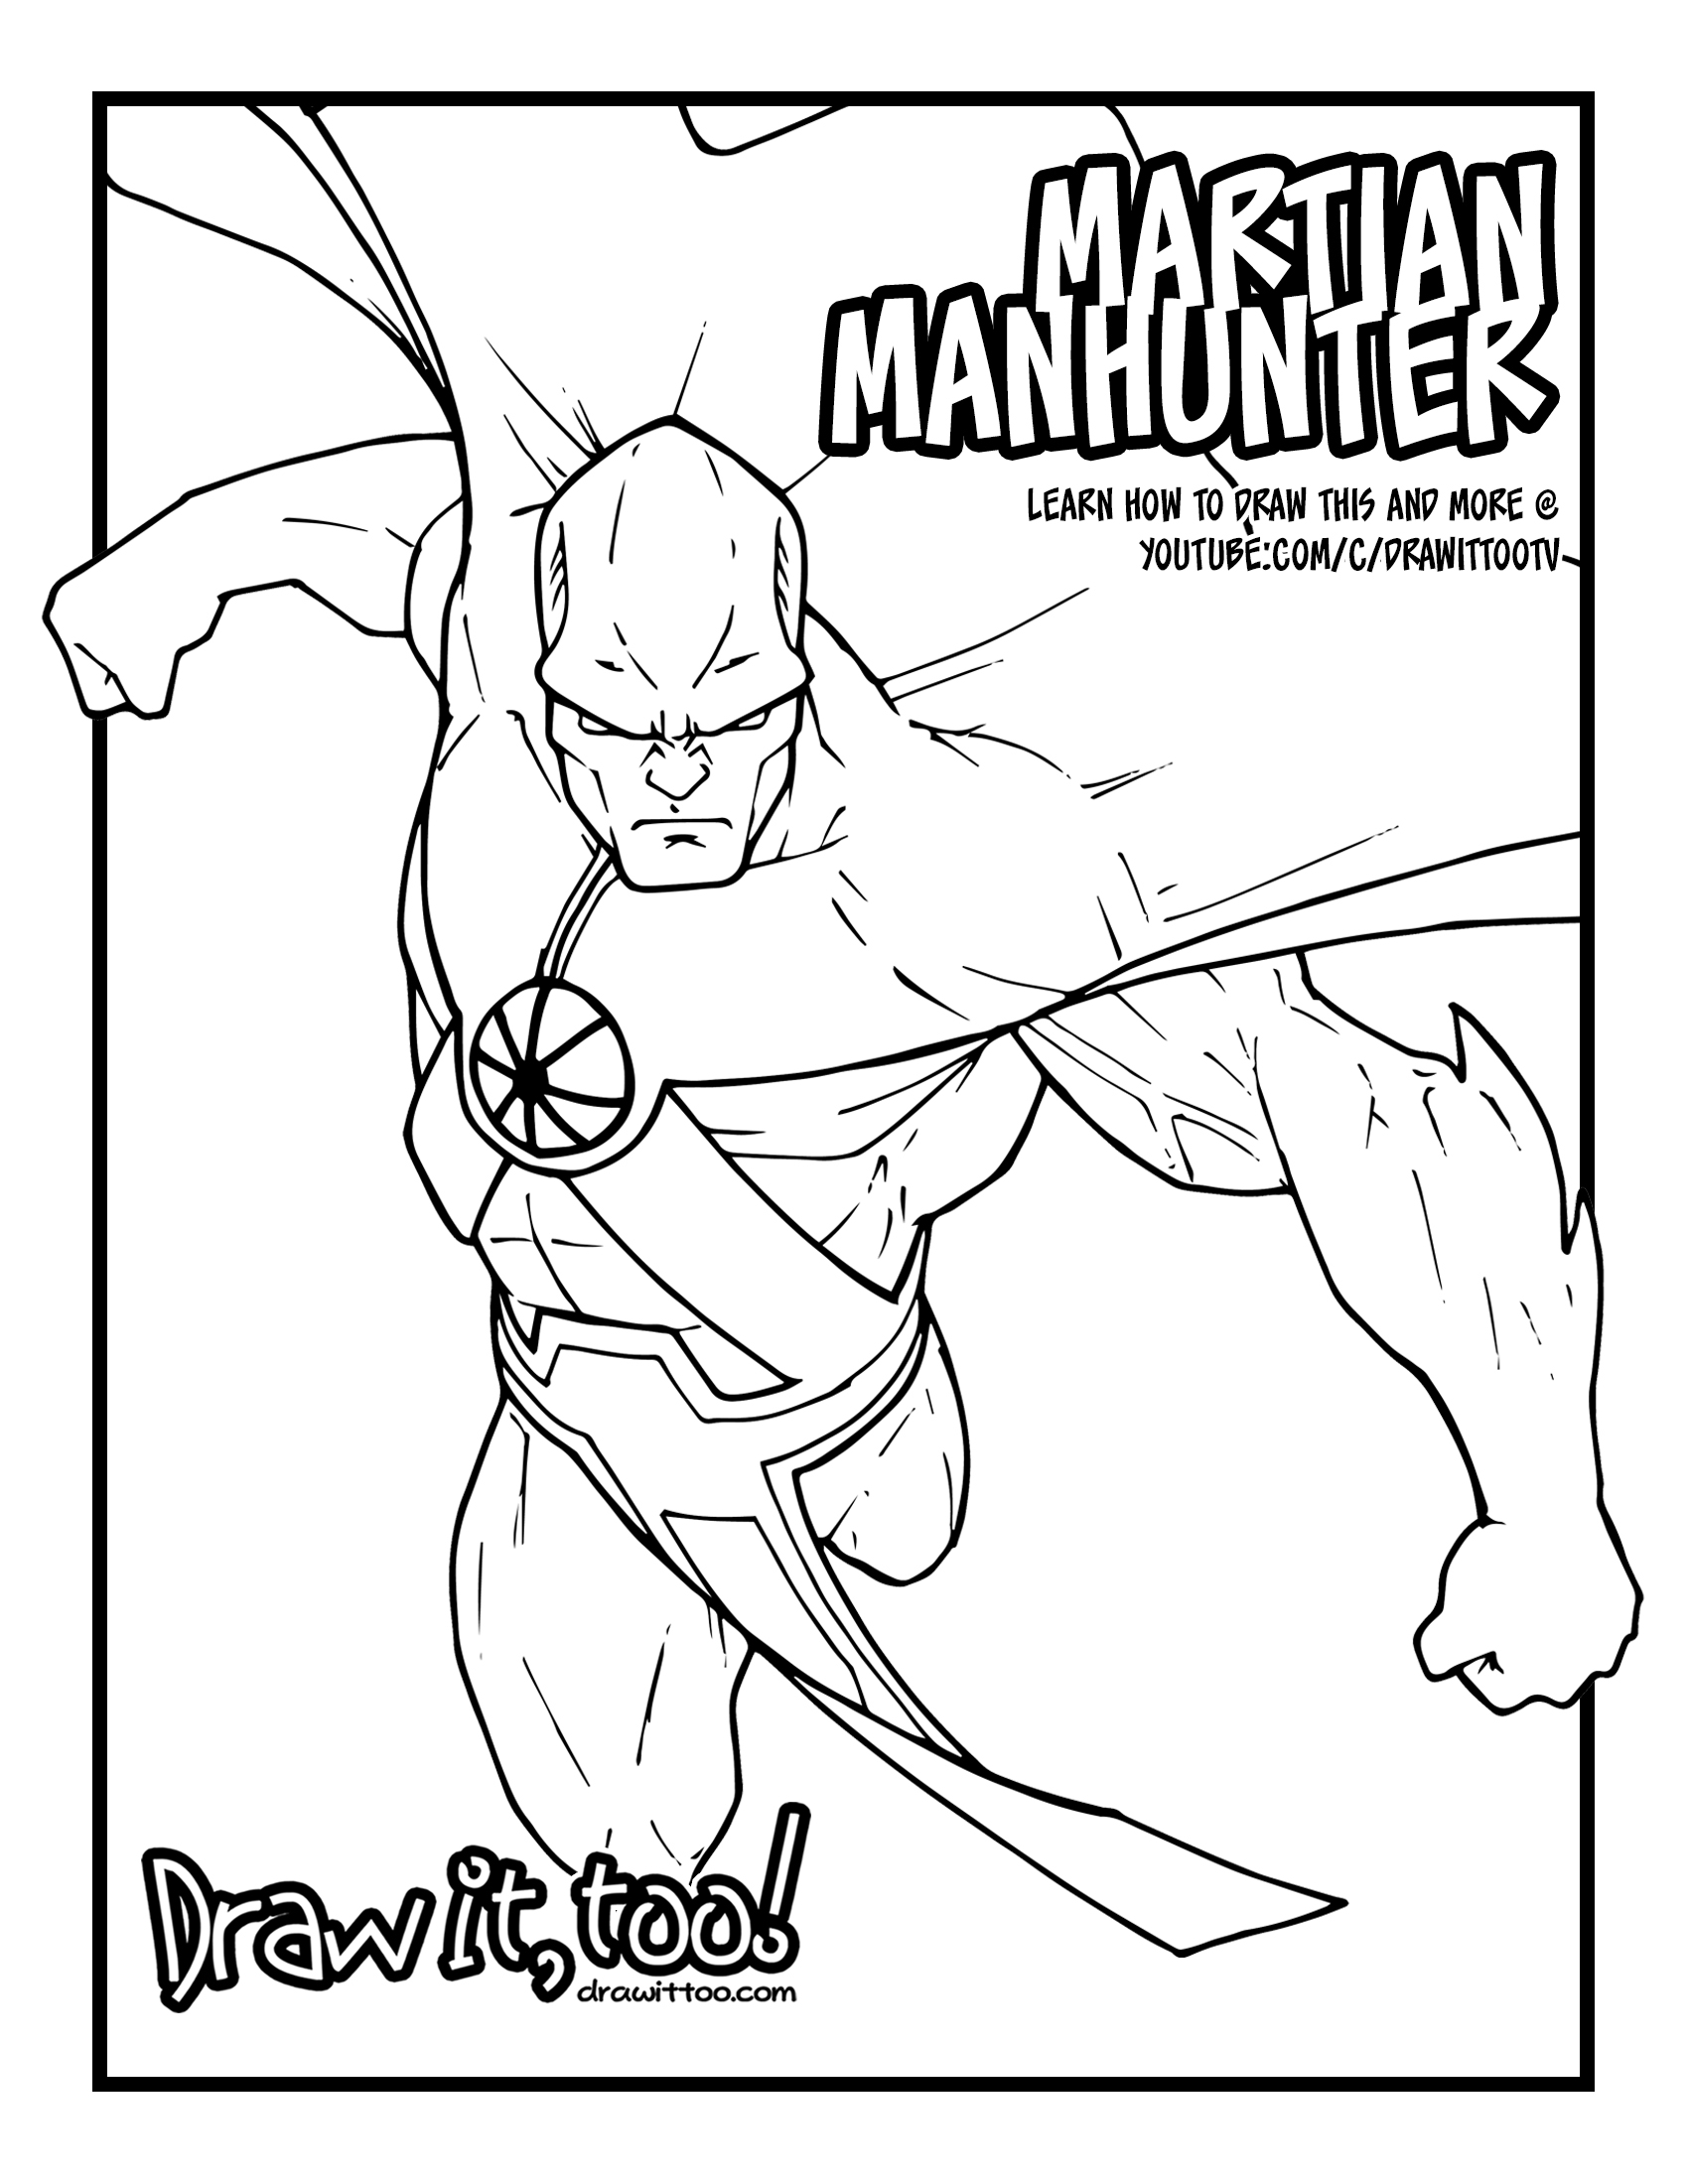 Martian Manhunter Coloring Pages Related Keywords